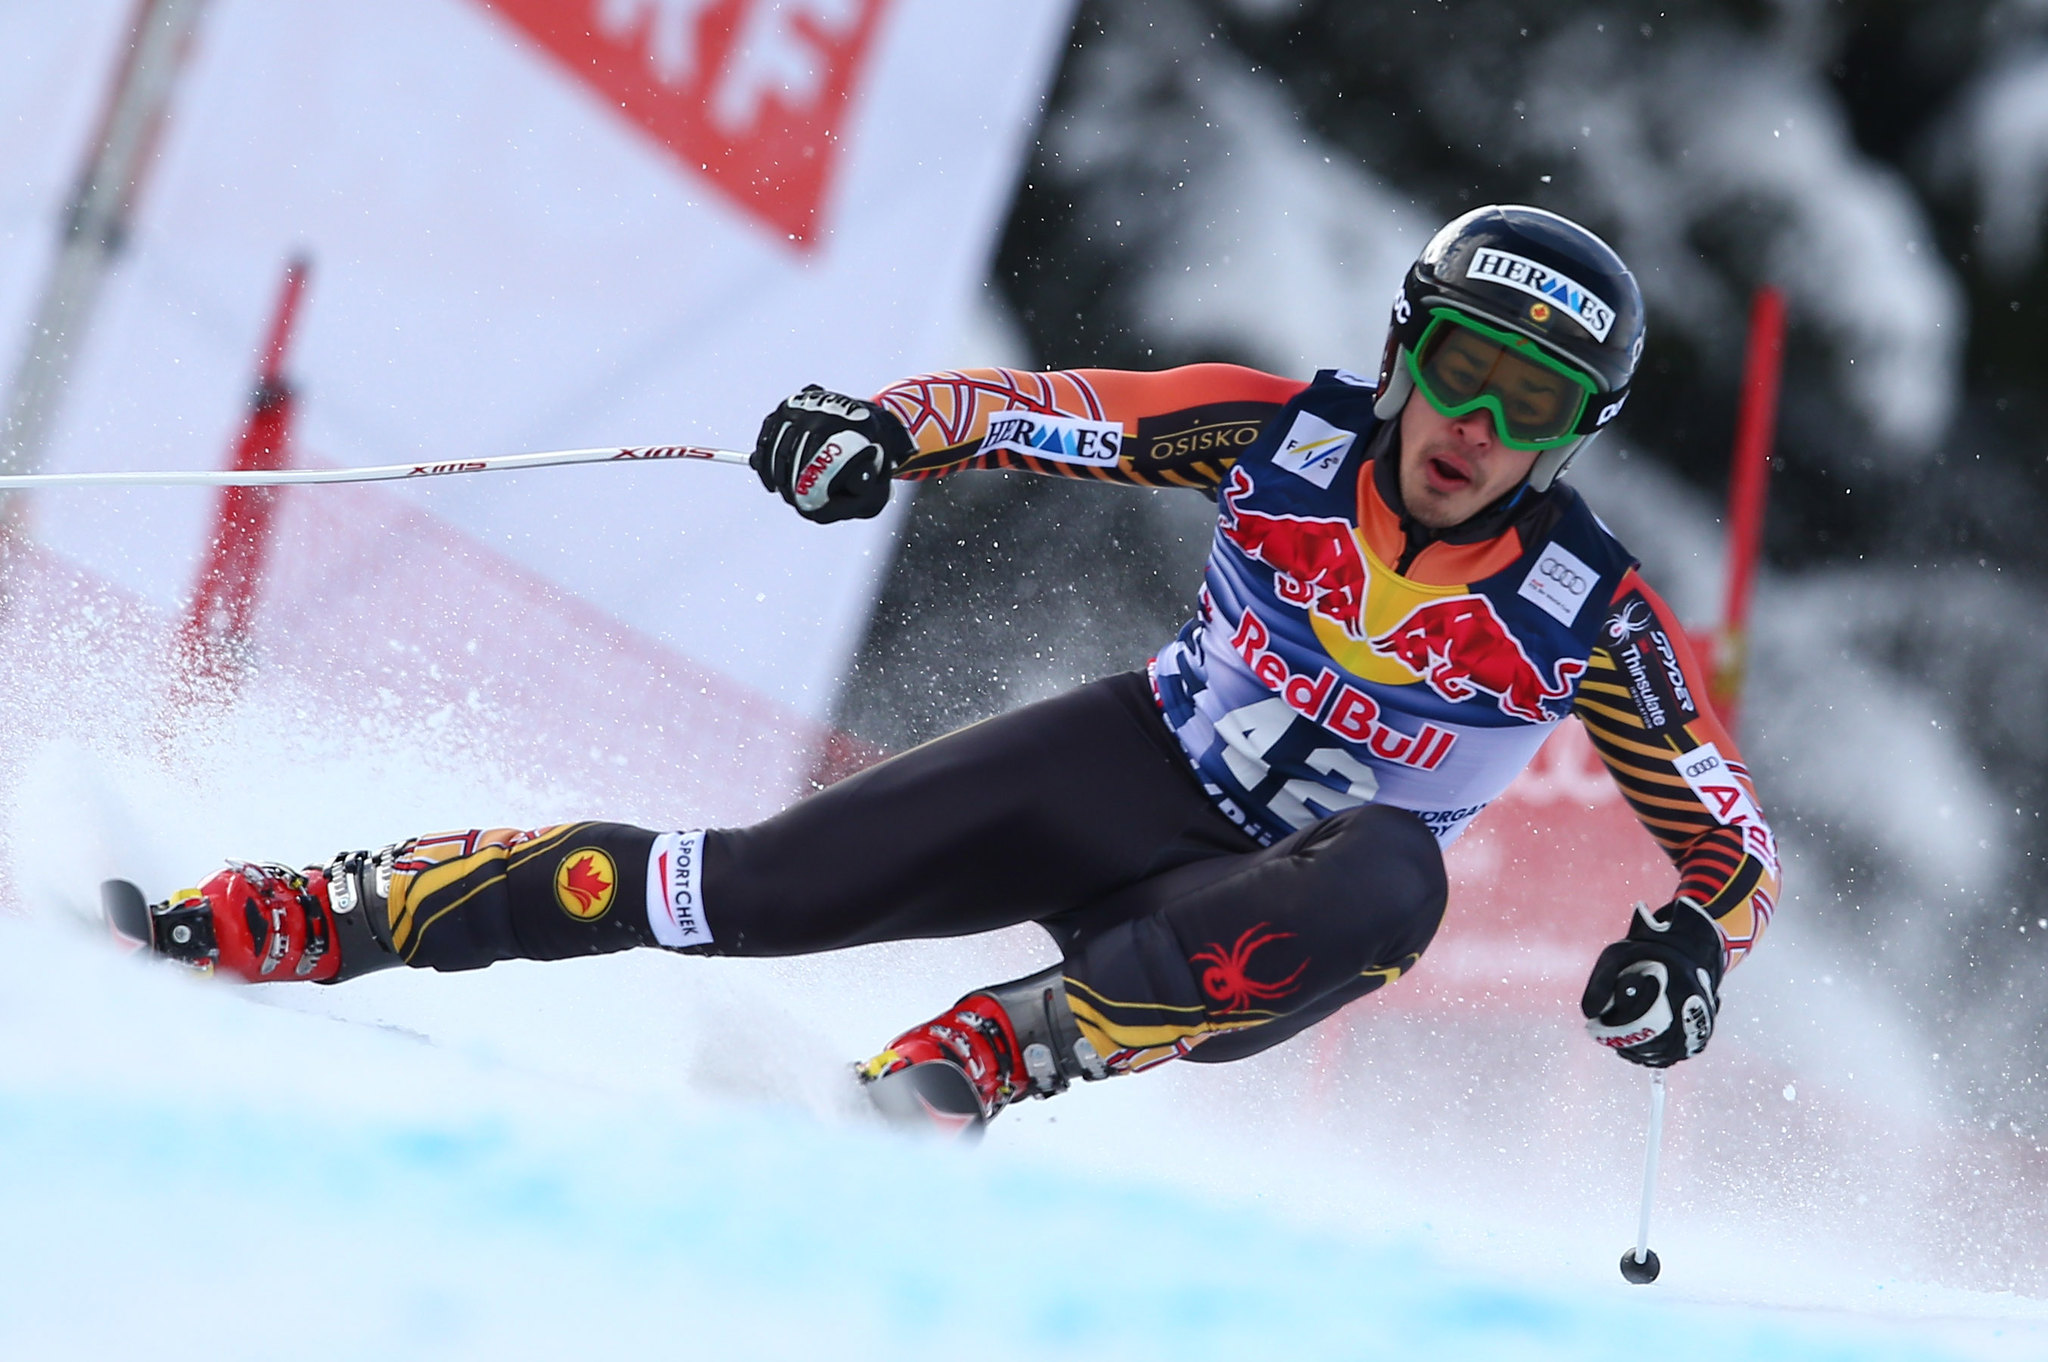 Morgan Pridy in action in the legendary Kitzbuhel downhill.